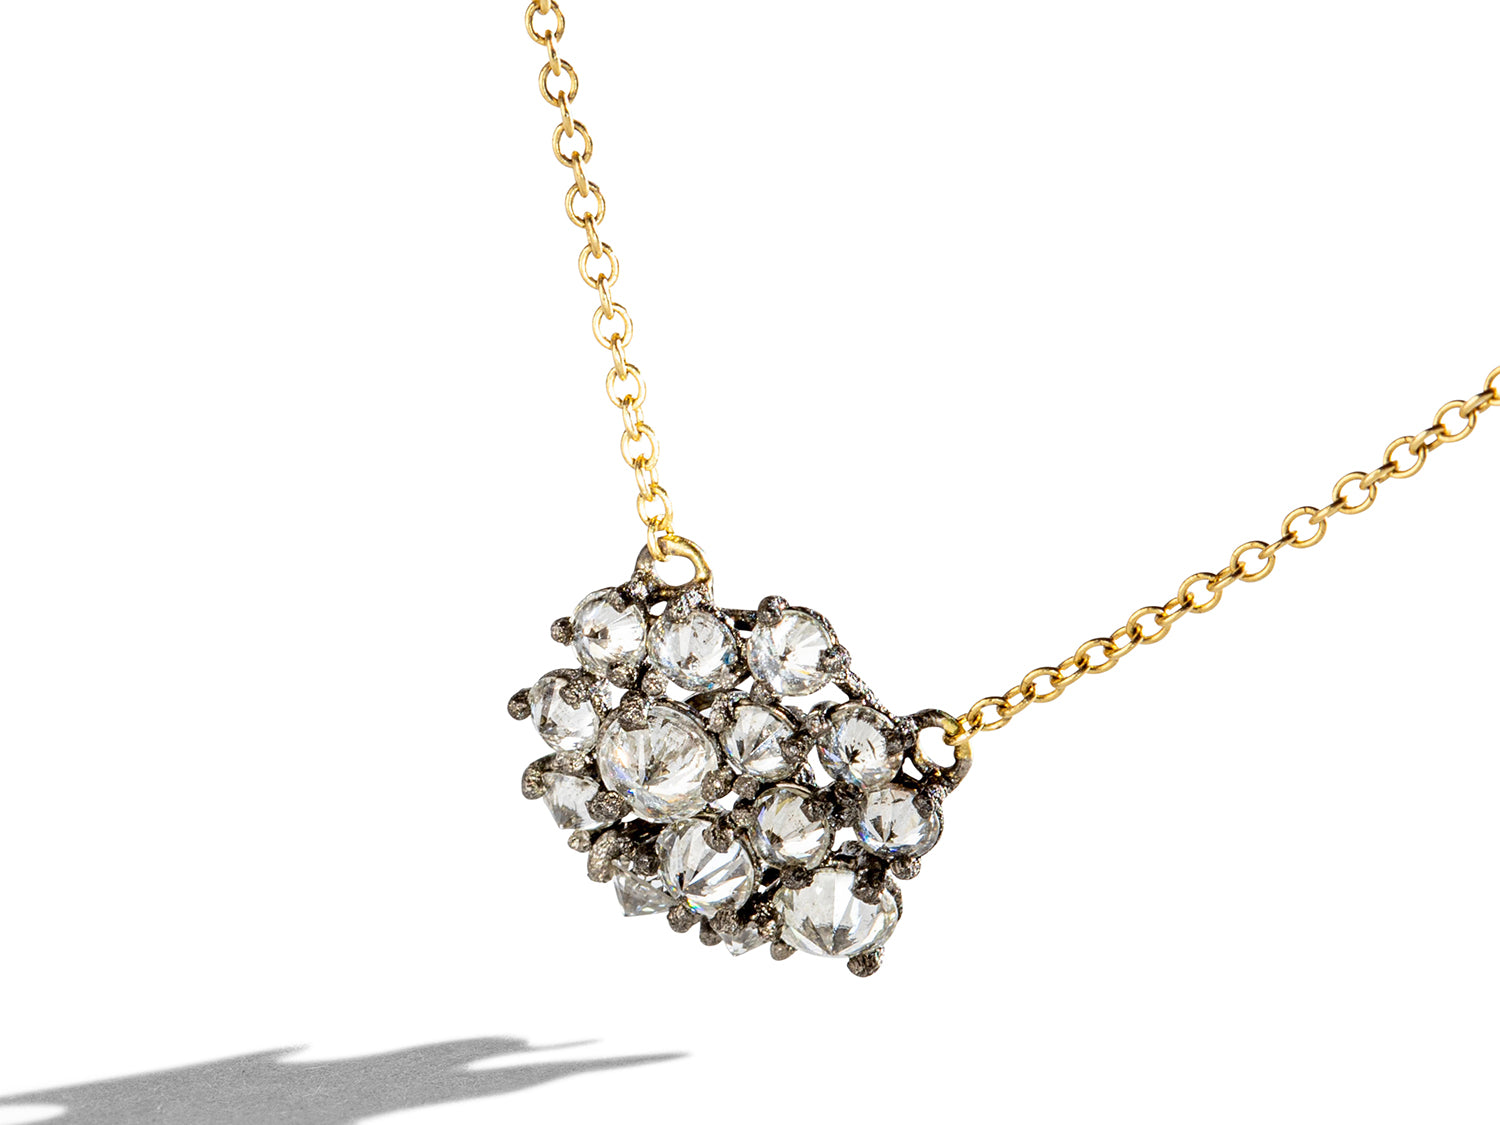 Inverted Diamond Cluster Pendant Necklace